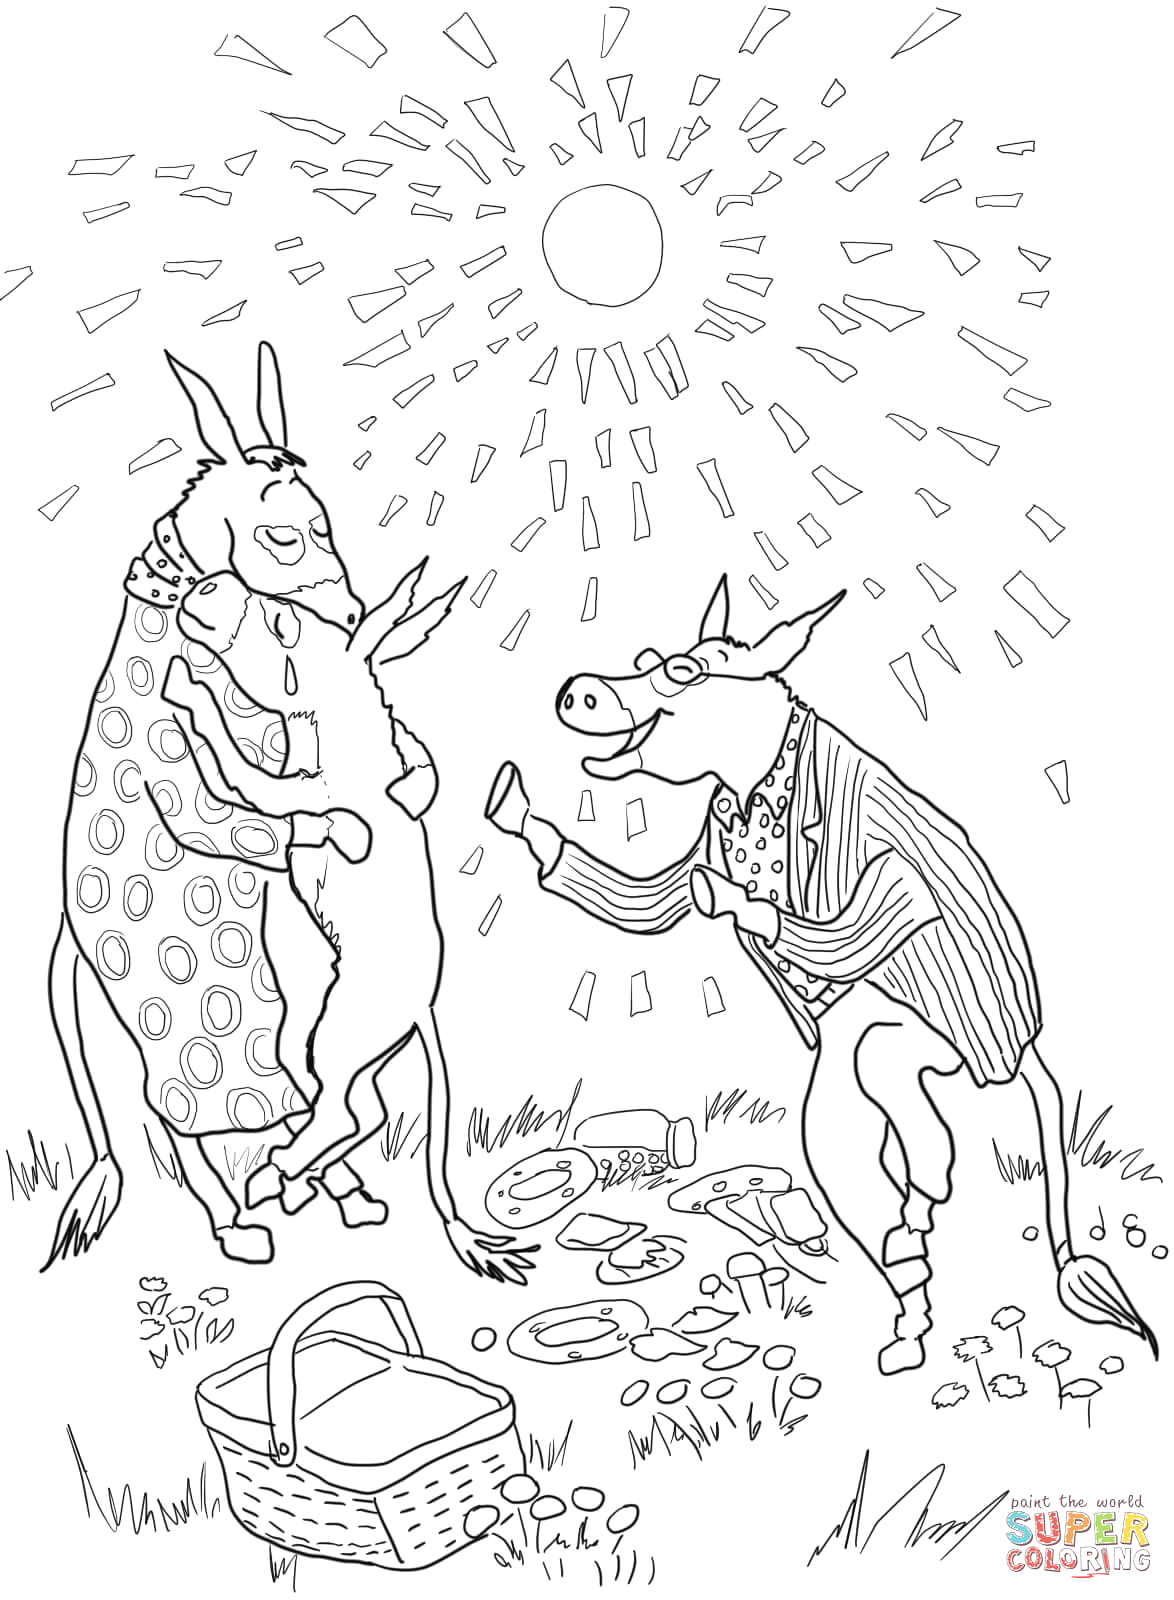 Sylvester and the Magic Pebble Coloring Page Sylvester and the Magic Pebble Coloring Page Coloring Home